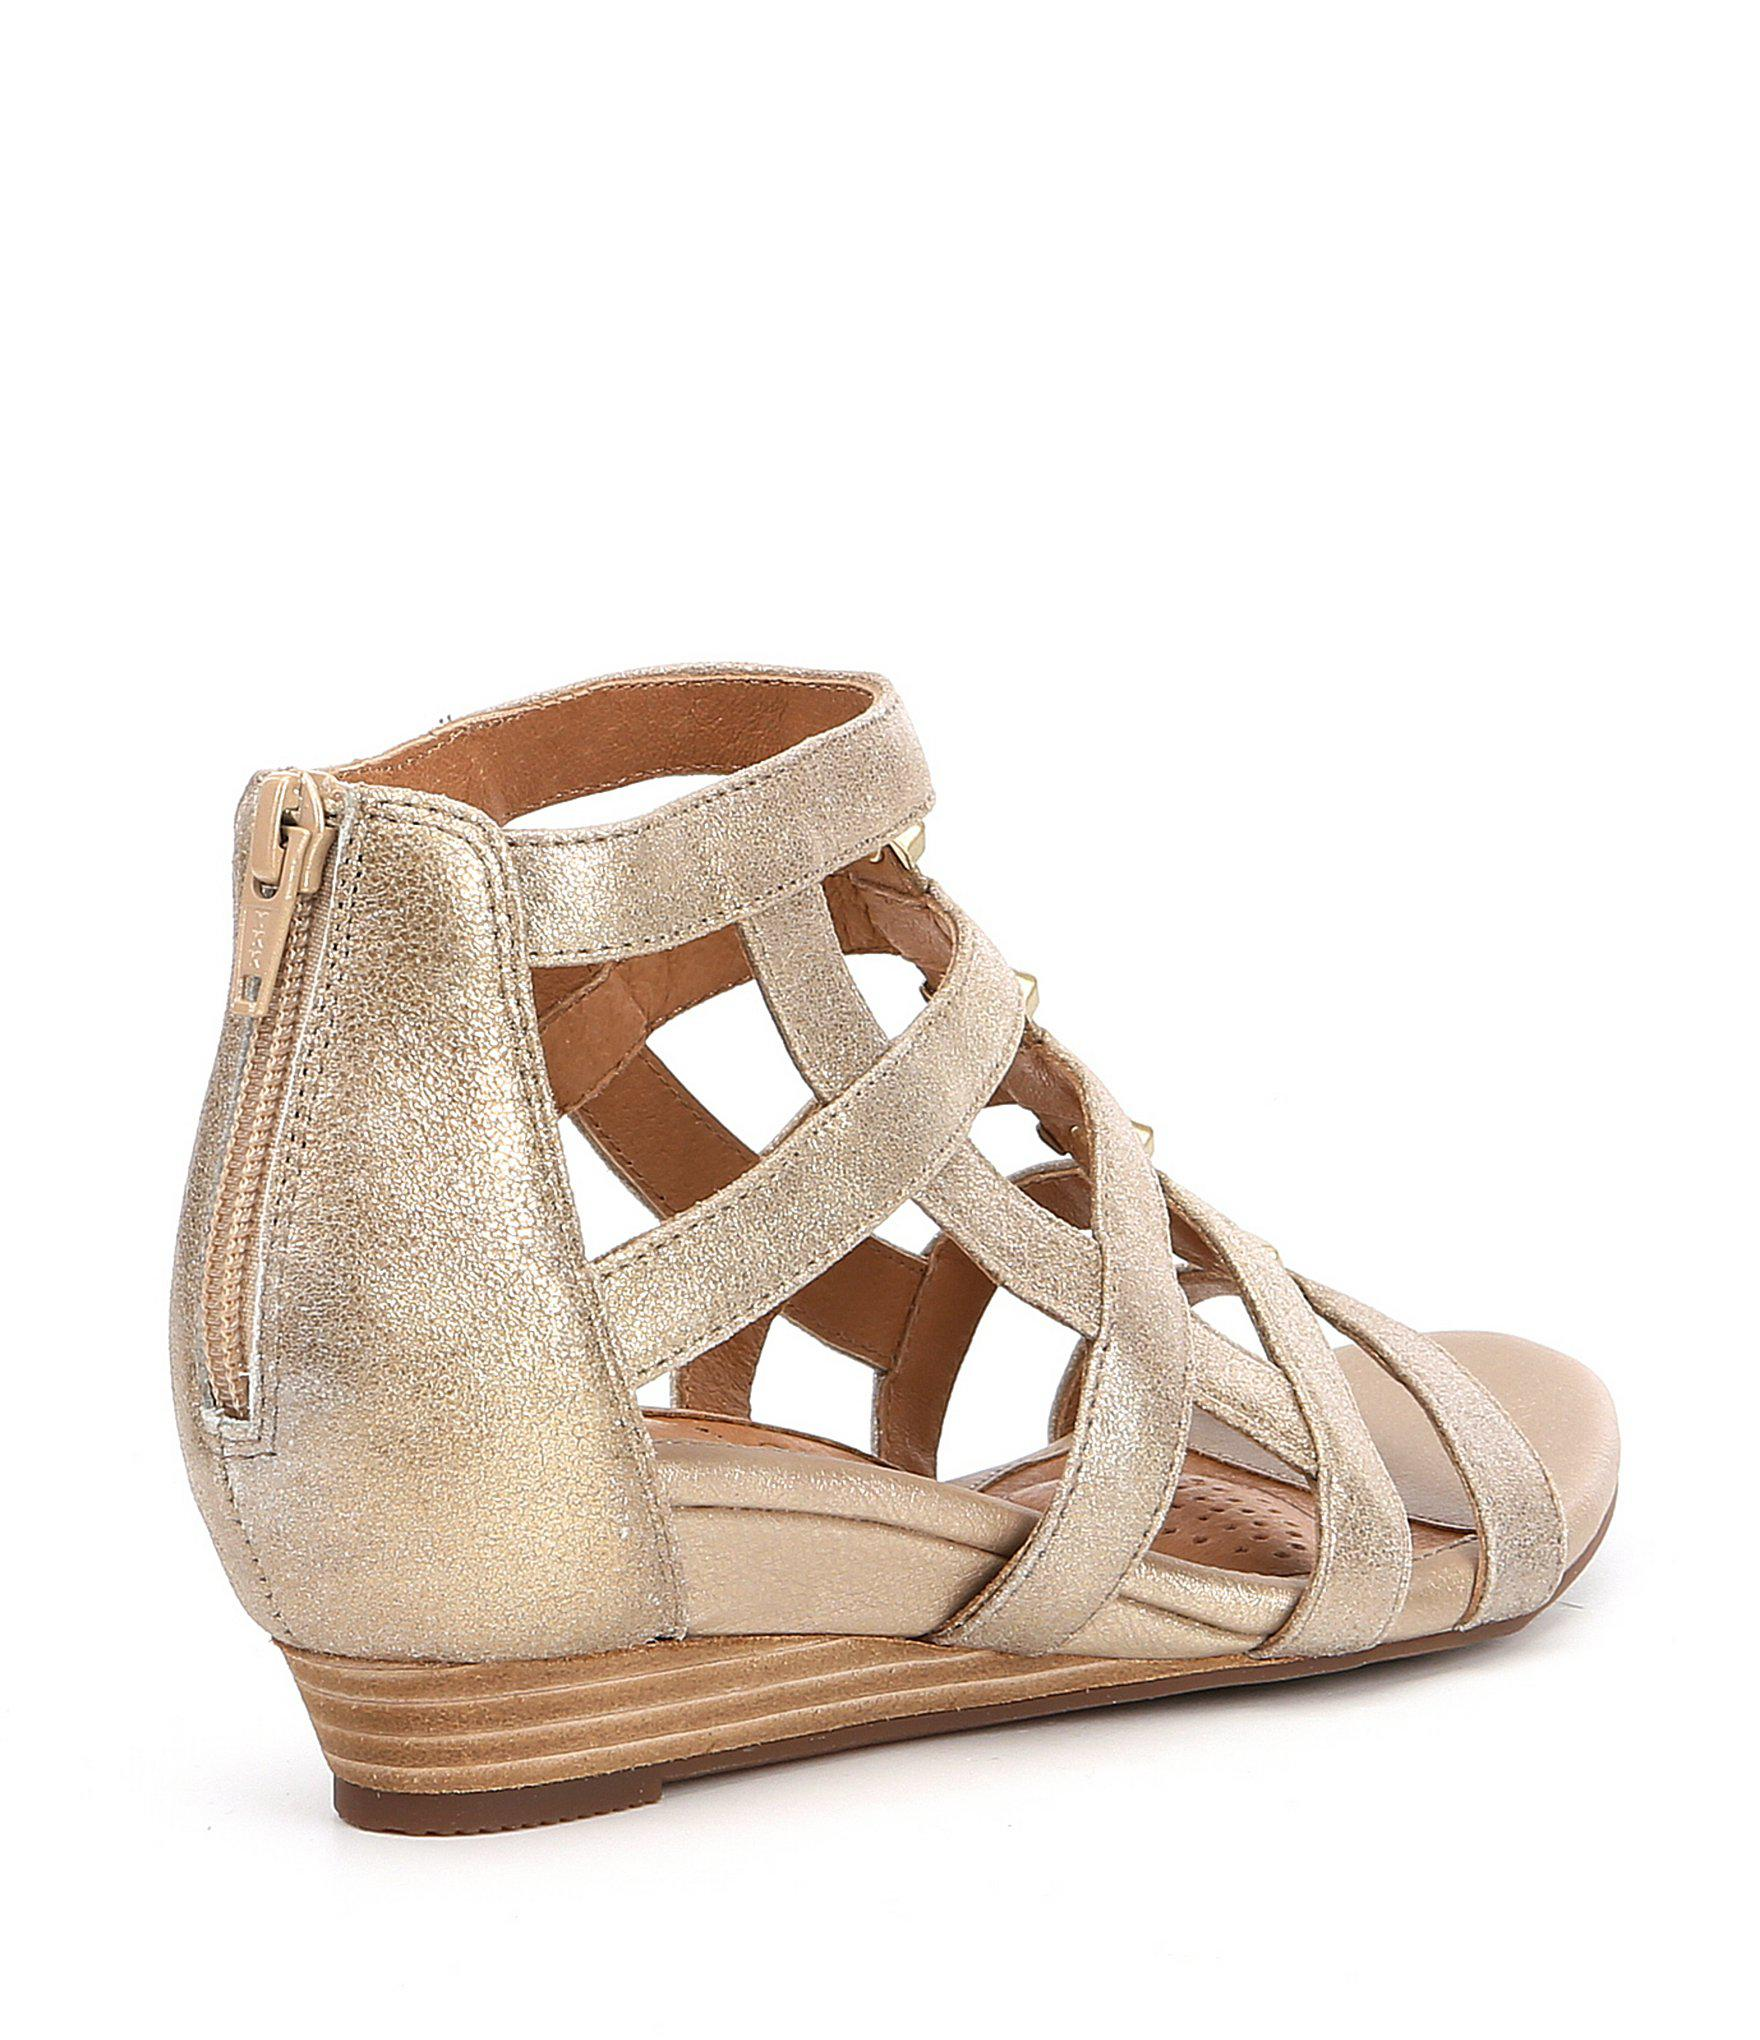 f181fb7b8a9f Lyst - Söfft Rio Leather Caged Metal Detail Gladiator Wedges in Metallic